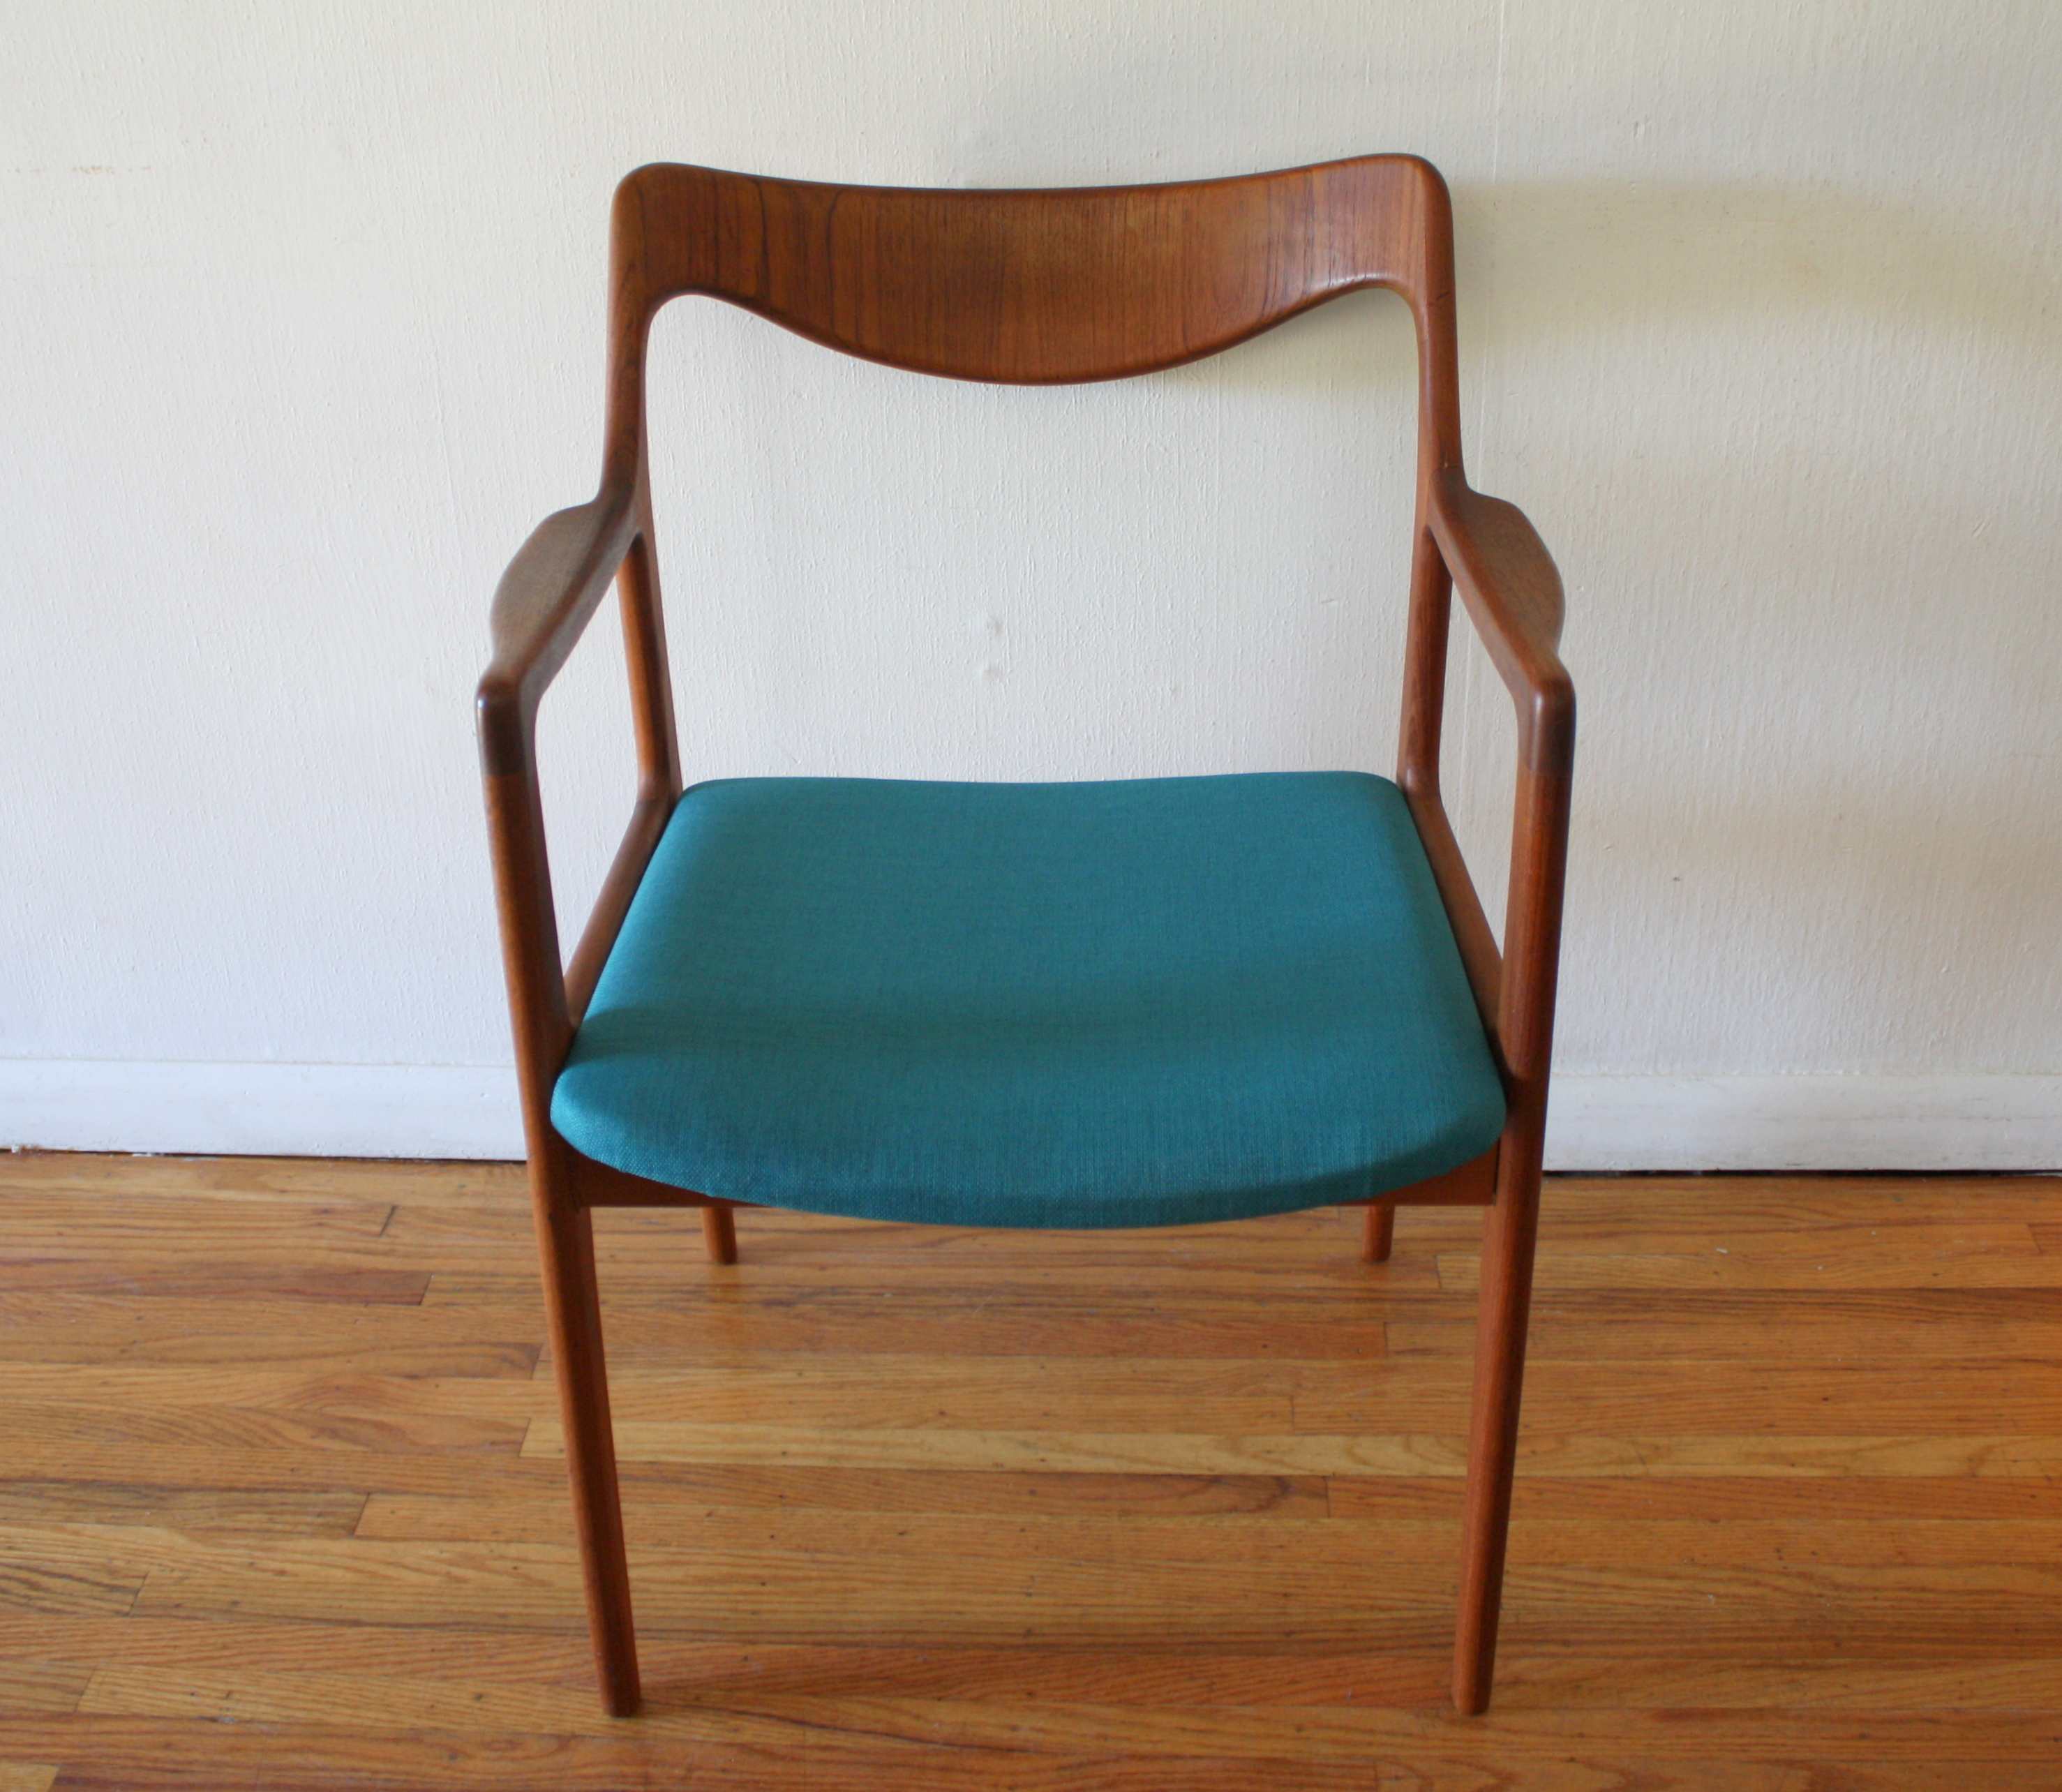 Swedish Mid Century Furniture Mid Century Modern Swedish Teak Chair Picked Vintage